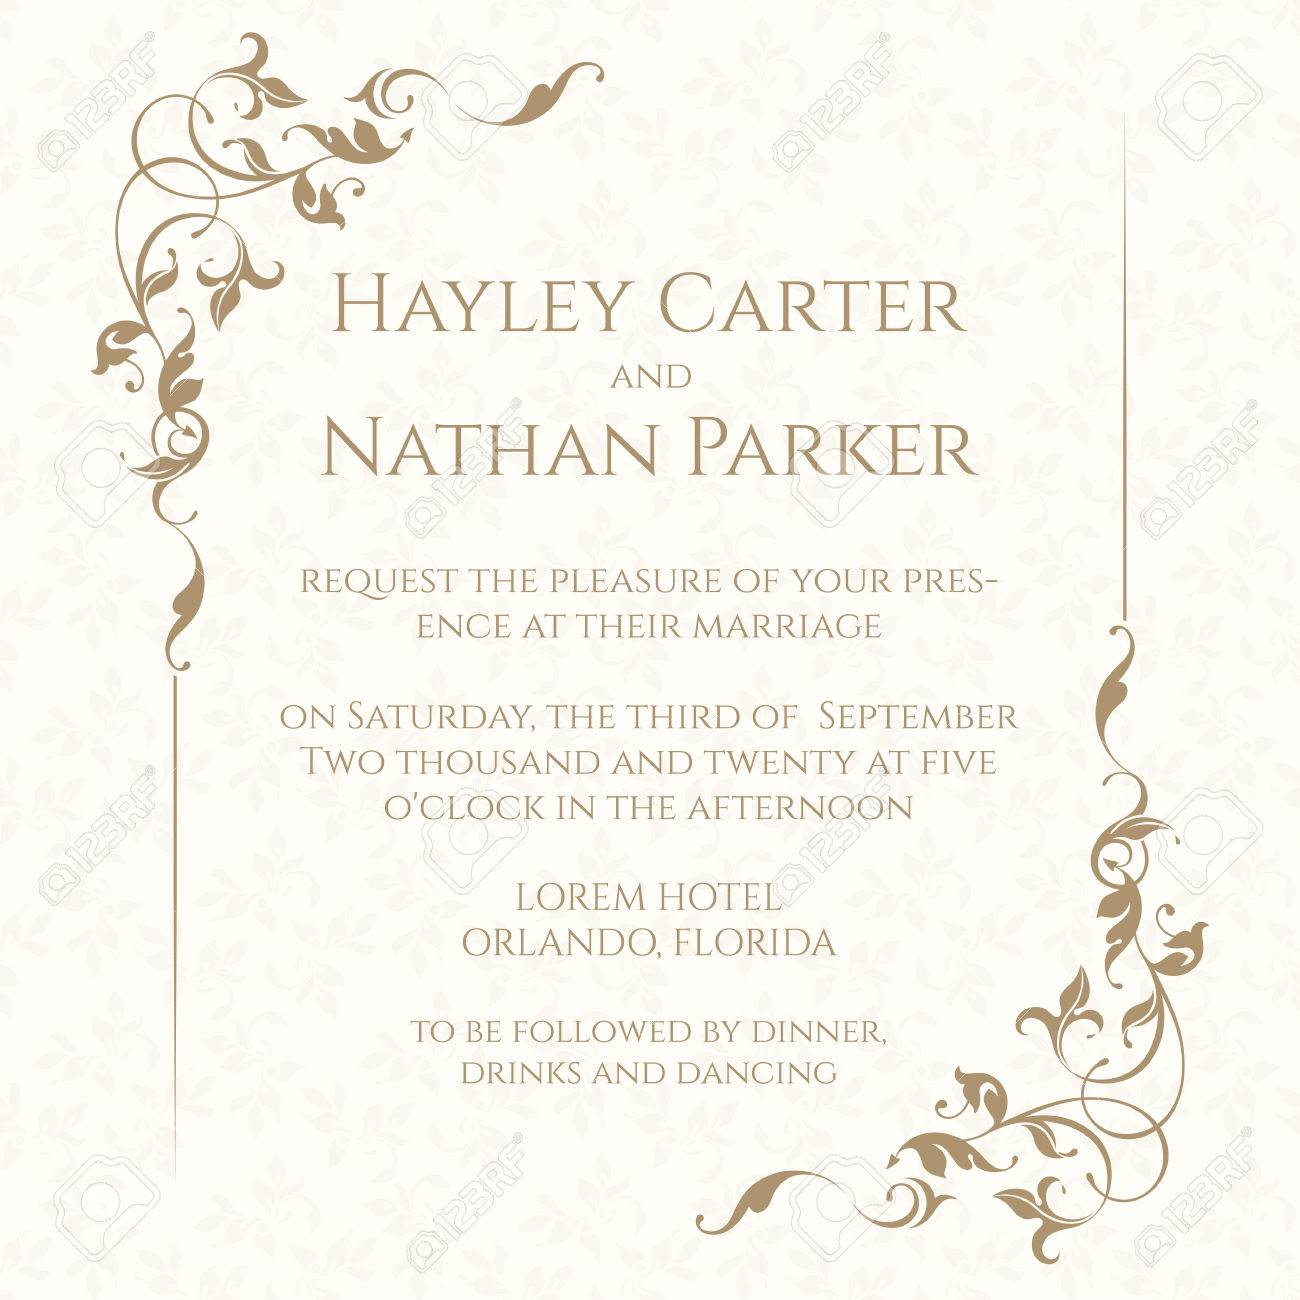 Invitation card with floral frame on seamless background. Classic design page. Wedding invitation, Save The Date, valentines day, birthday cards. - 61240494